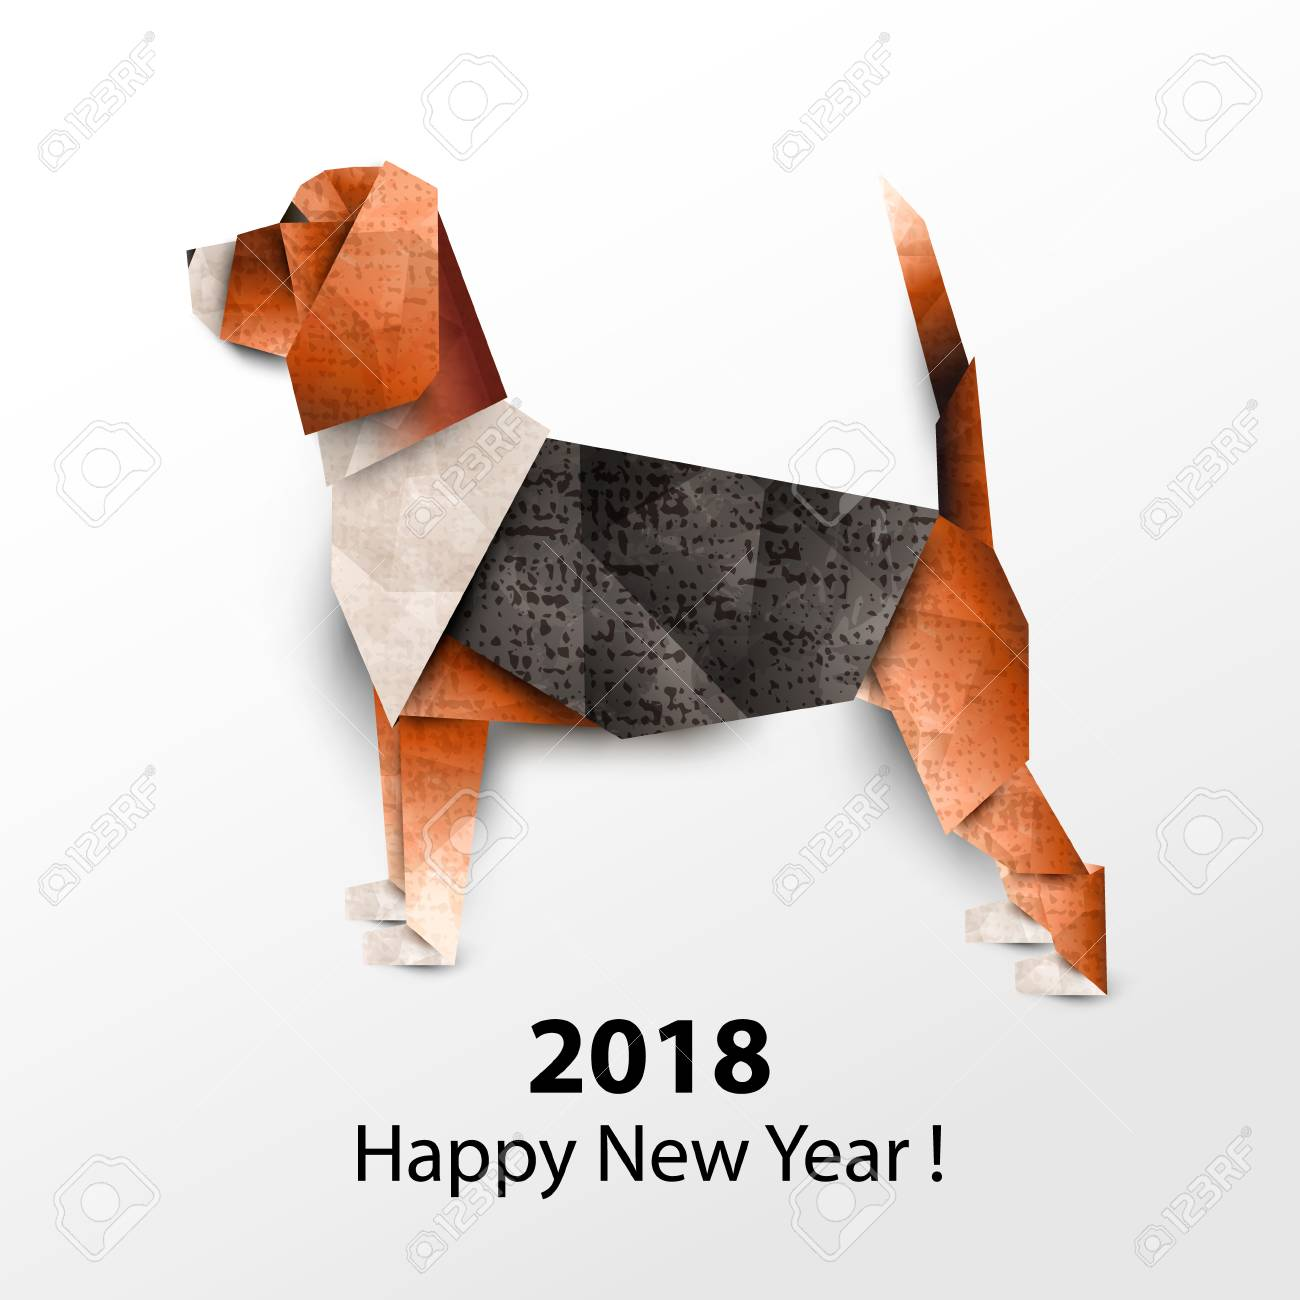 Dog Beagle Colored Paper Origami Vector Illustration 2018 Happy New Year Stock